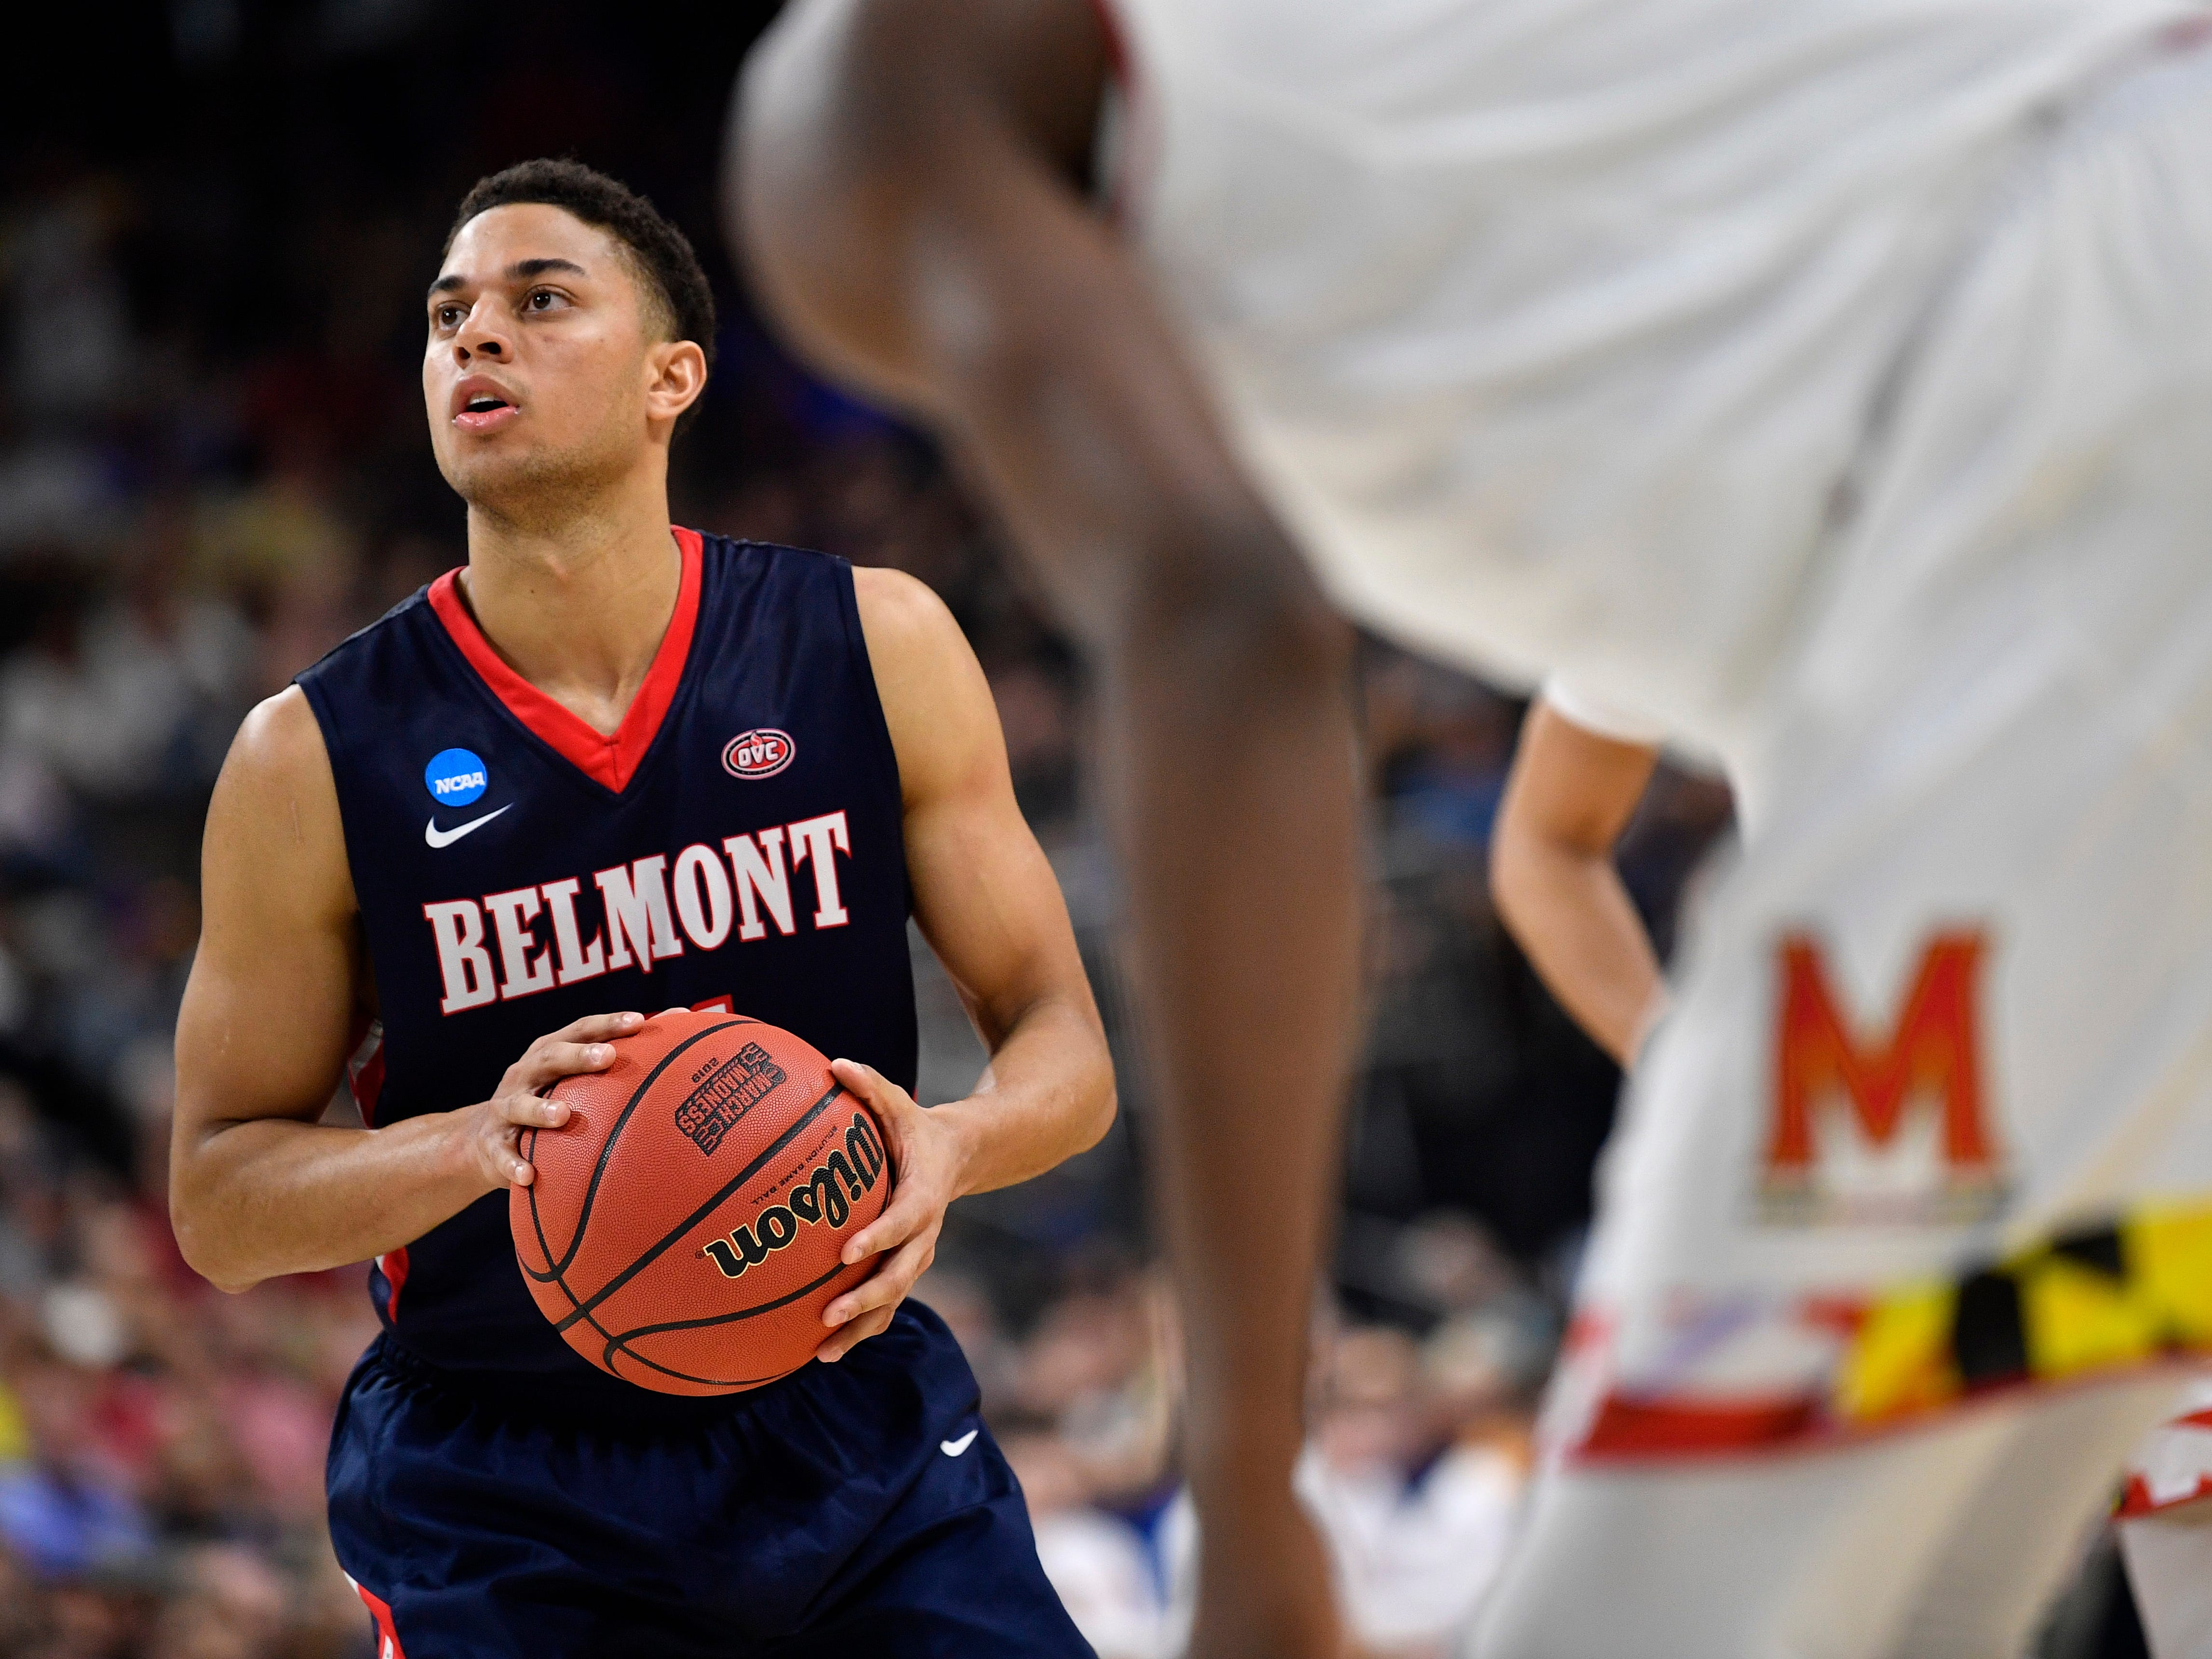 Belmont guard Kevin McClain (11) gets into position for a free throw during the second half of the first-round NCAA college basketball tournament game against Maryland at VyStar Veterans Memorial Arena in Jacksonville, Fla., Thursday, March 21, 2019.